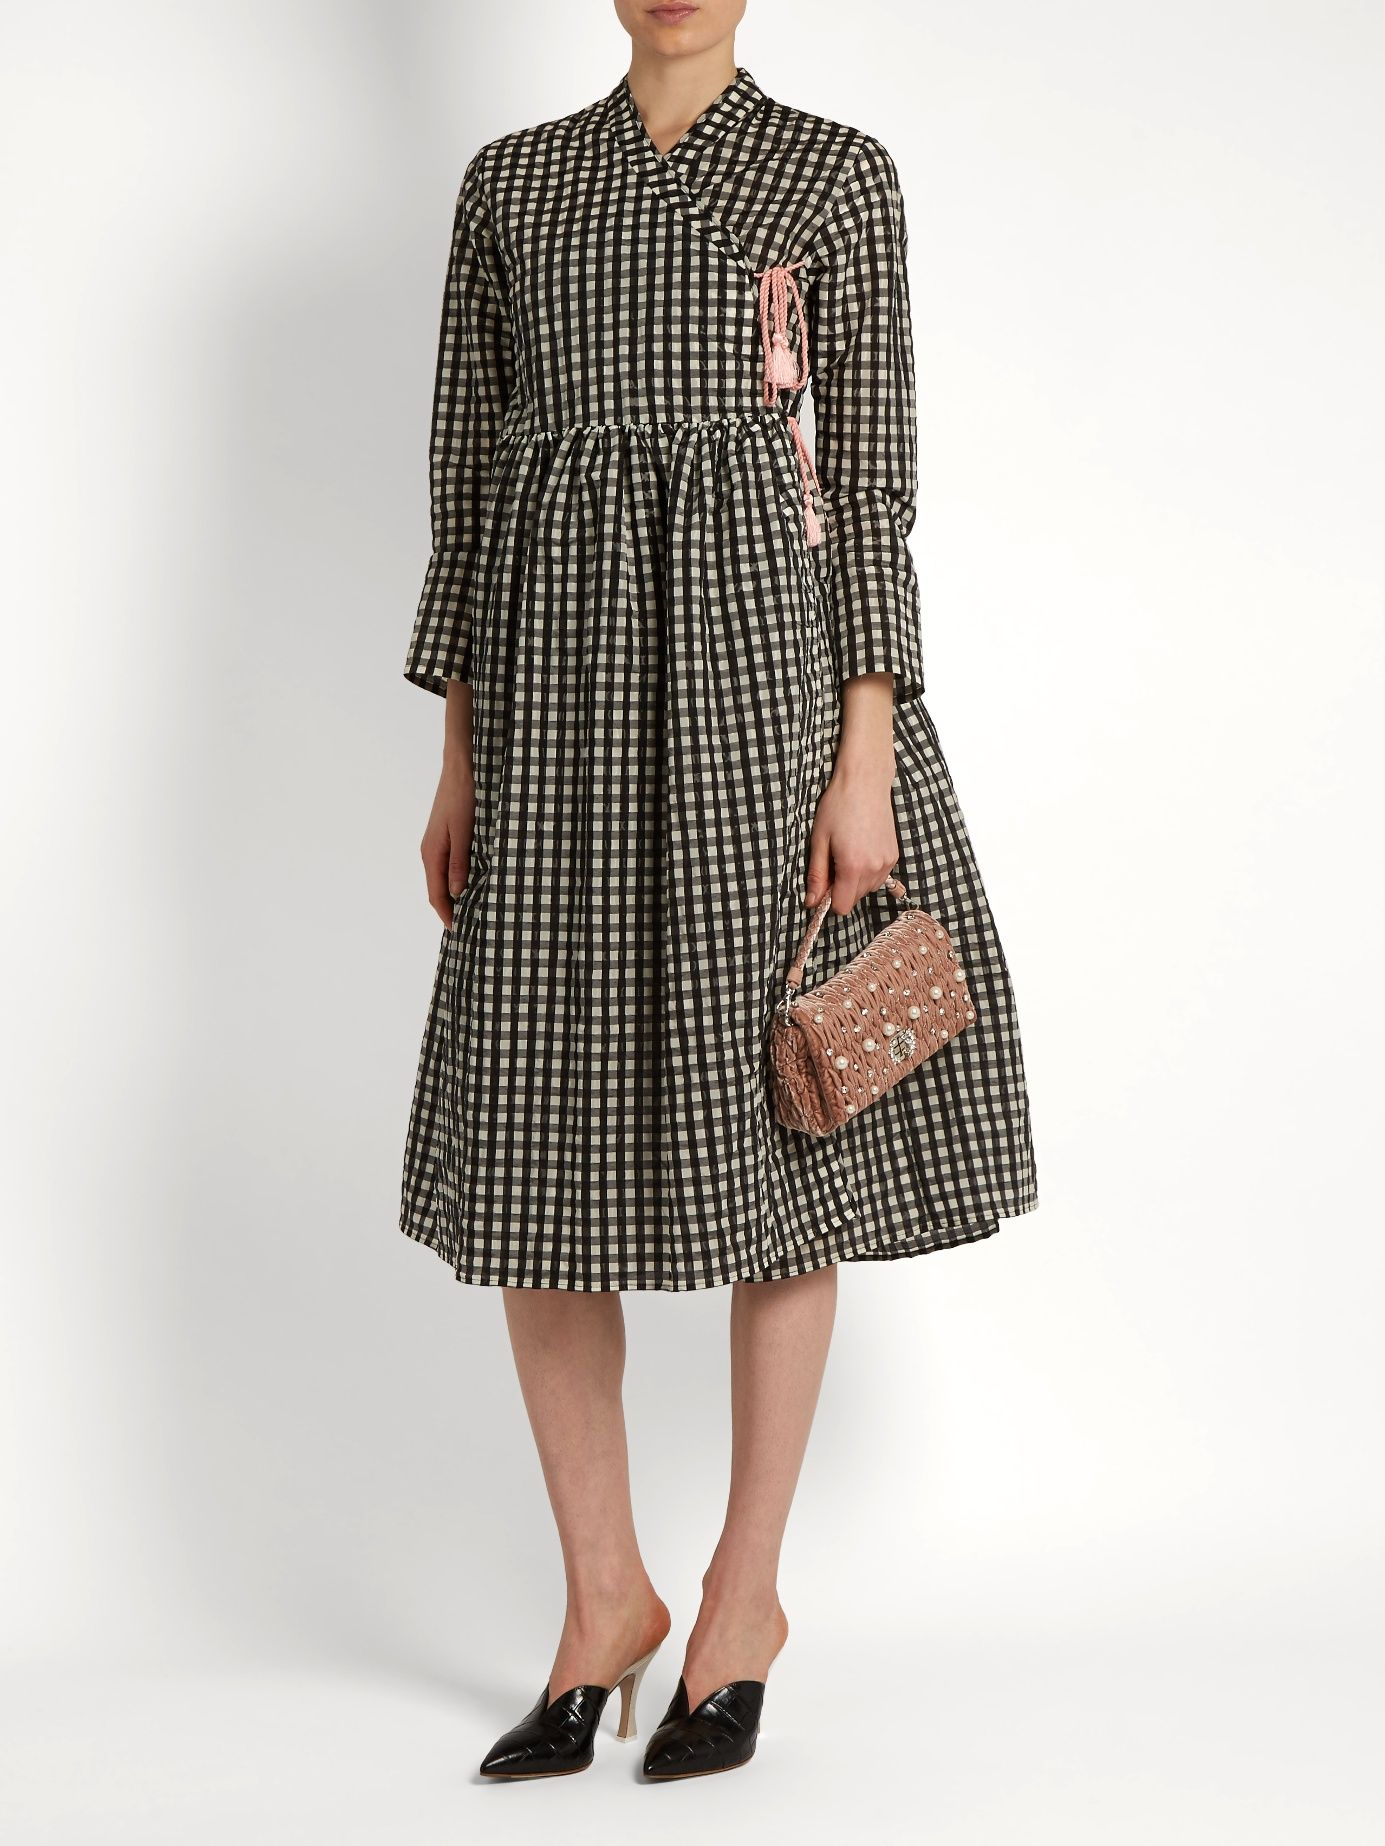 1b3c598e8f5 Click here to buy Shrimps Hermione gingham dress at MATCHESFASHION ...